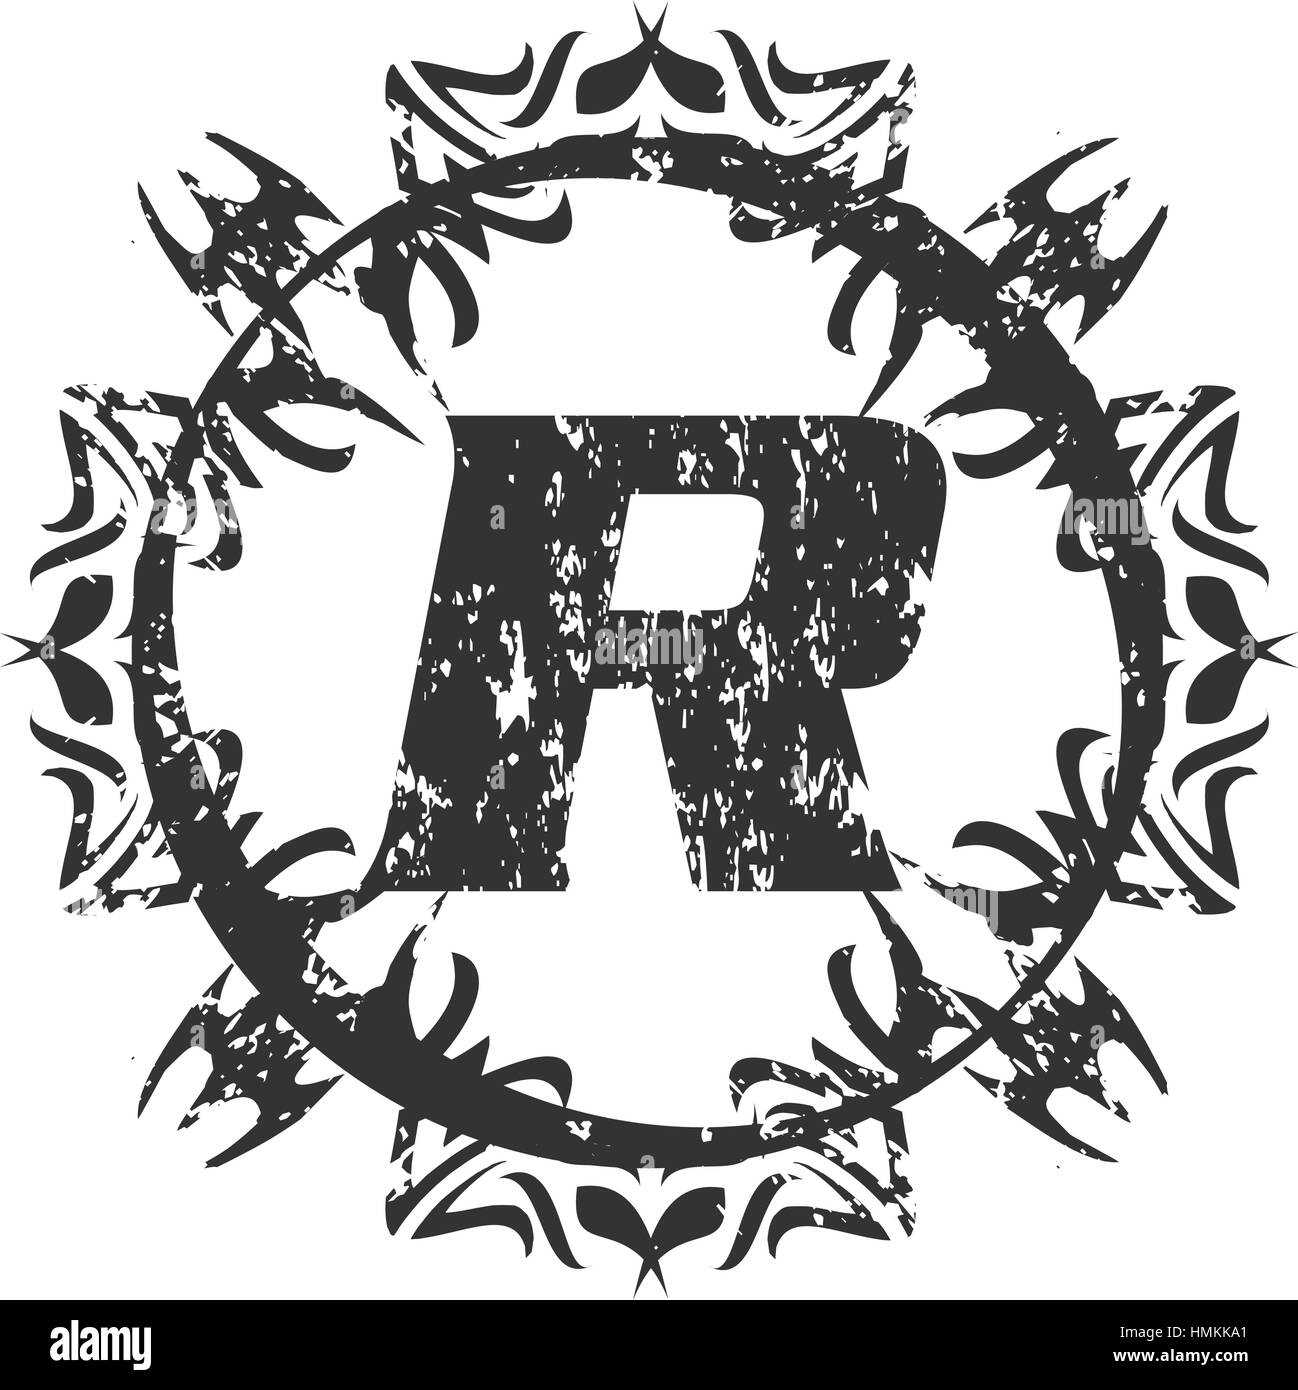 letter r black and white stock photos & images - alamy